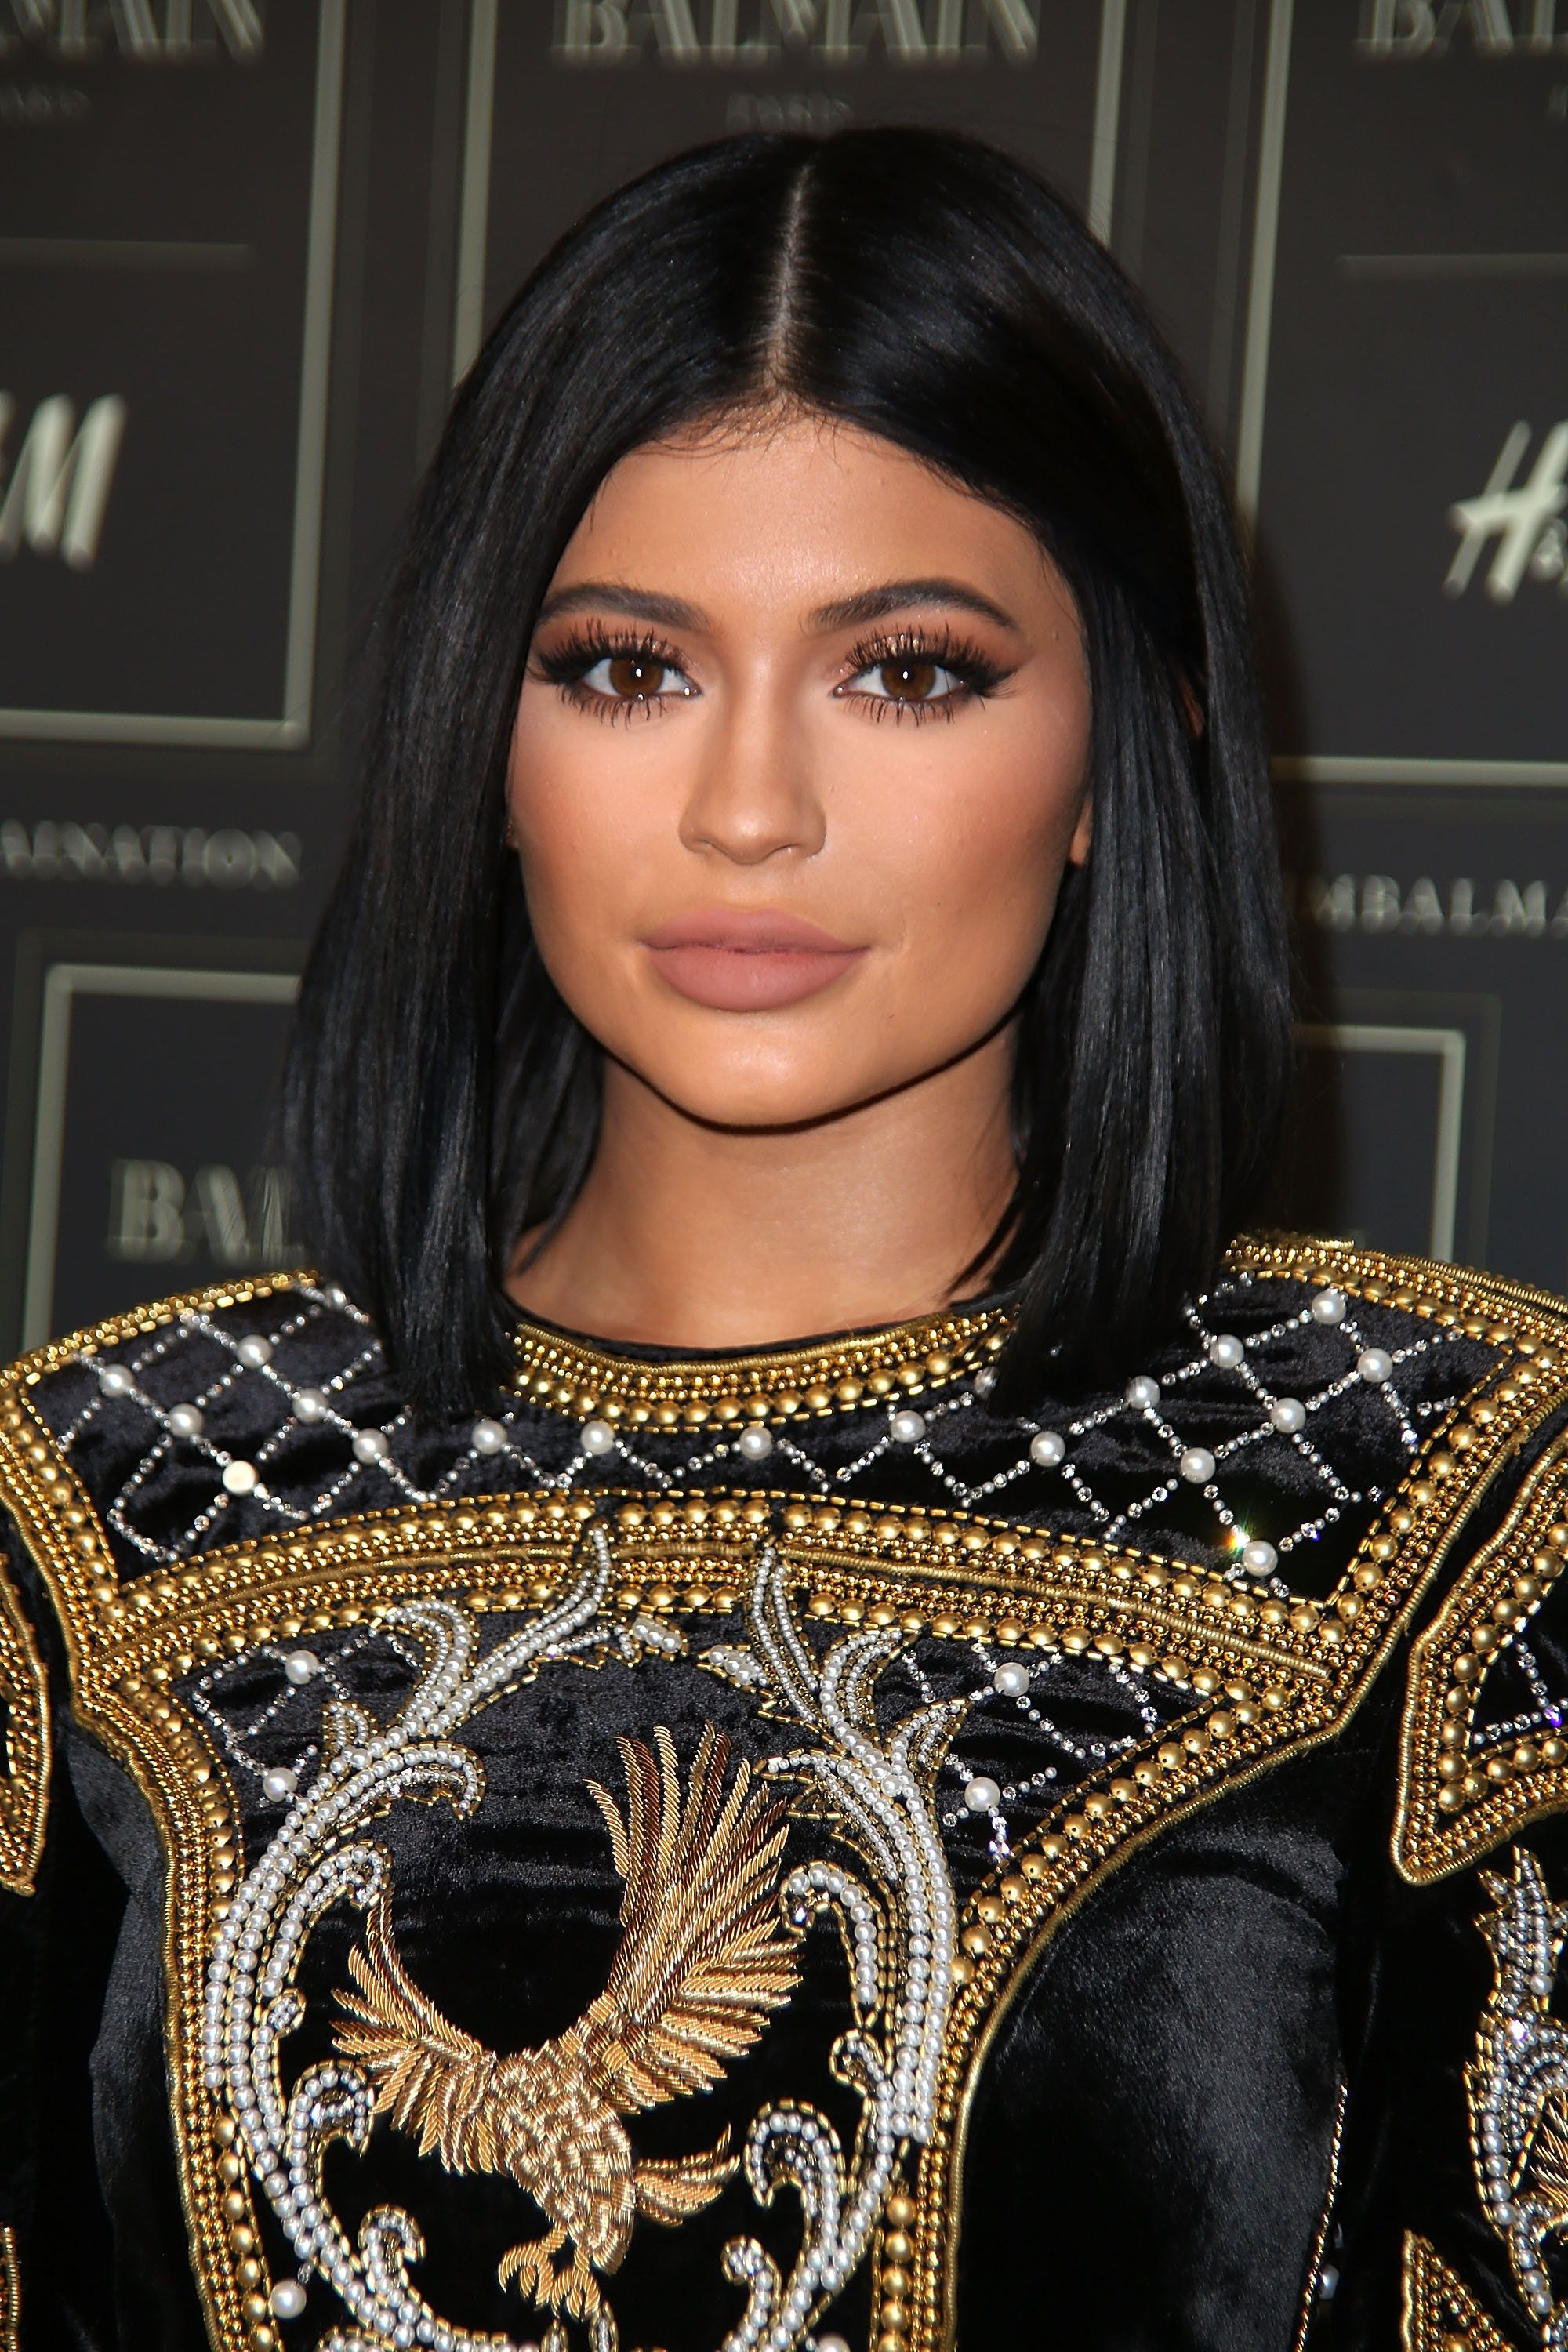 NEW YORK, NY - OCTOBER 20:  Kylie Jenner arrives at the BALMAIN X H&M collection  launch event at 23 Wall Street on October 20, 2015 in New York City.  (Photo by Sonia Moskowitz/WireImage)